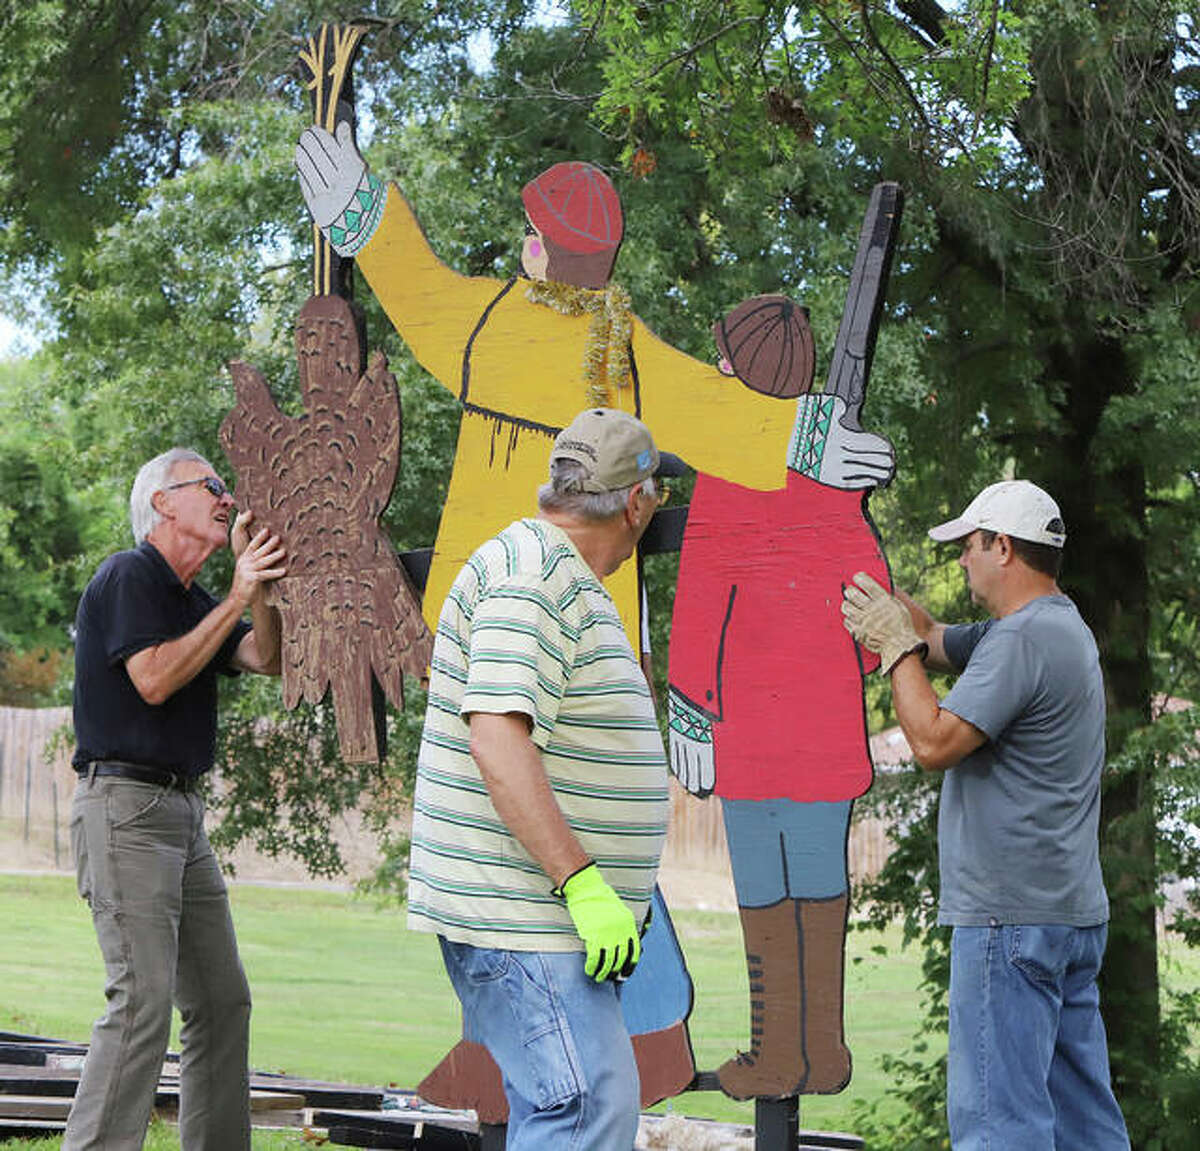 Additional photos from the Grandpa Gang's Christmas Wonderland work this week in Alton's Rock Spring Park.